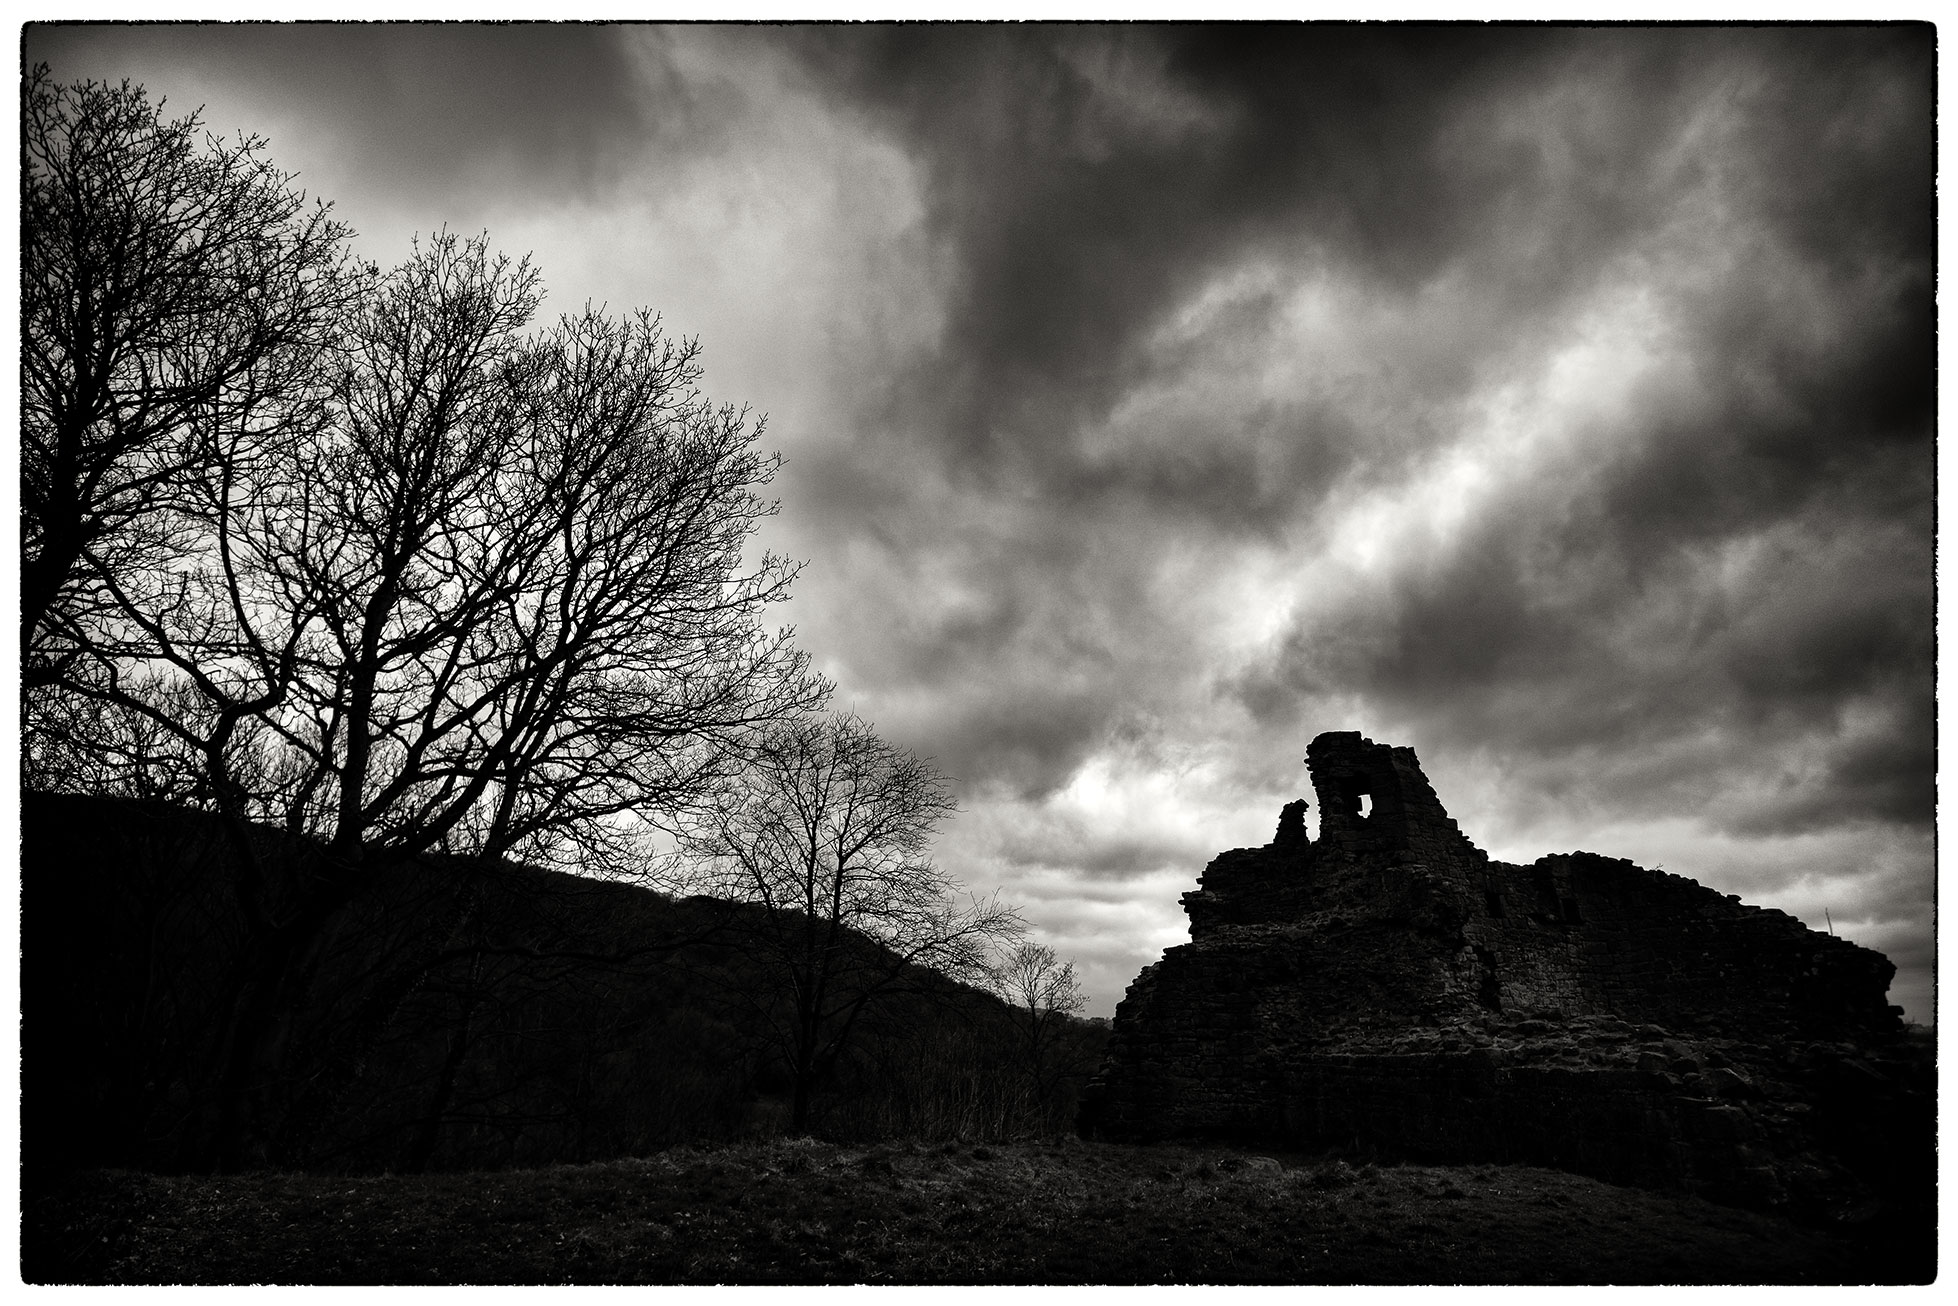 The ruins of Caergwrle Castle, also known as Queen's Hope, burnt down in 1283 and never rebuilt.